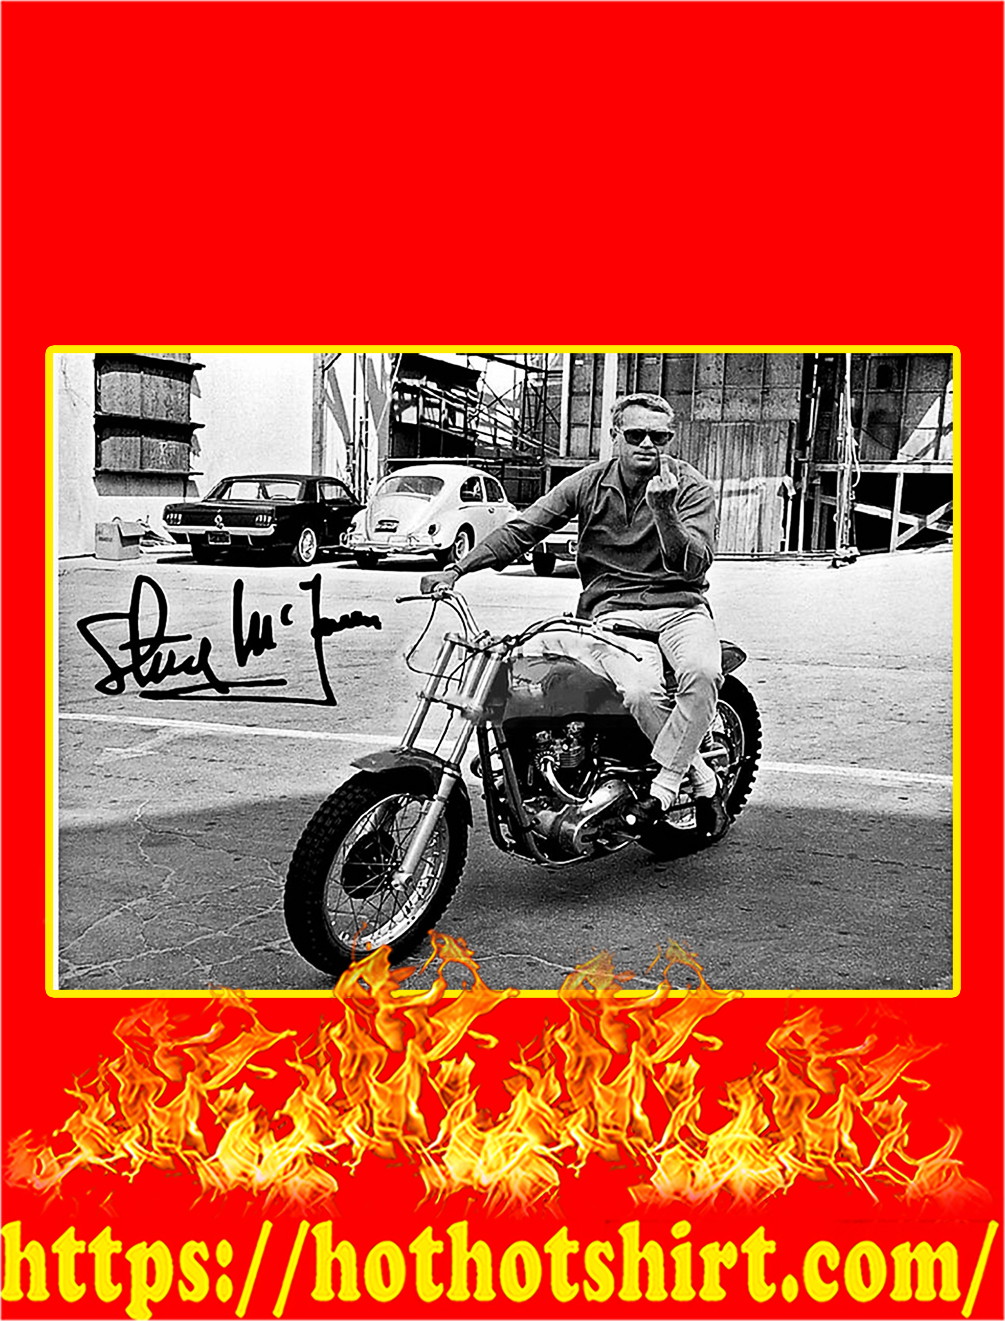 Steve McQueen One Finger Salute Signature Poster - A3